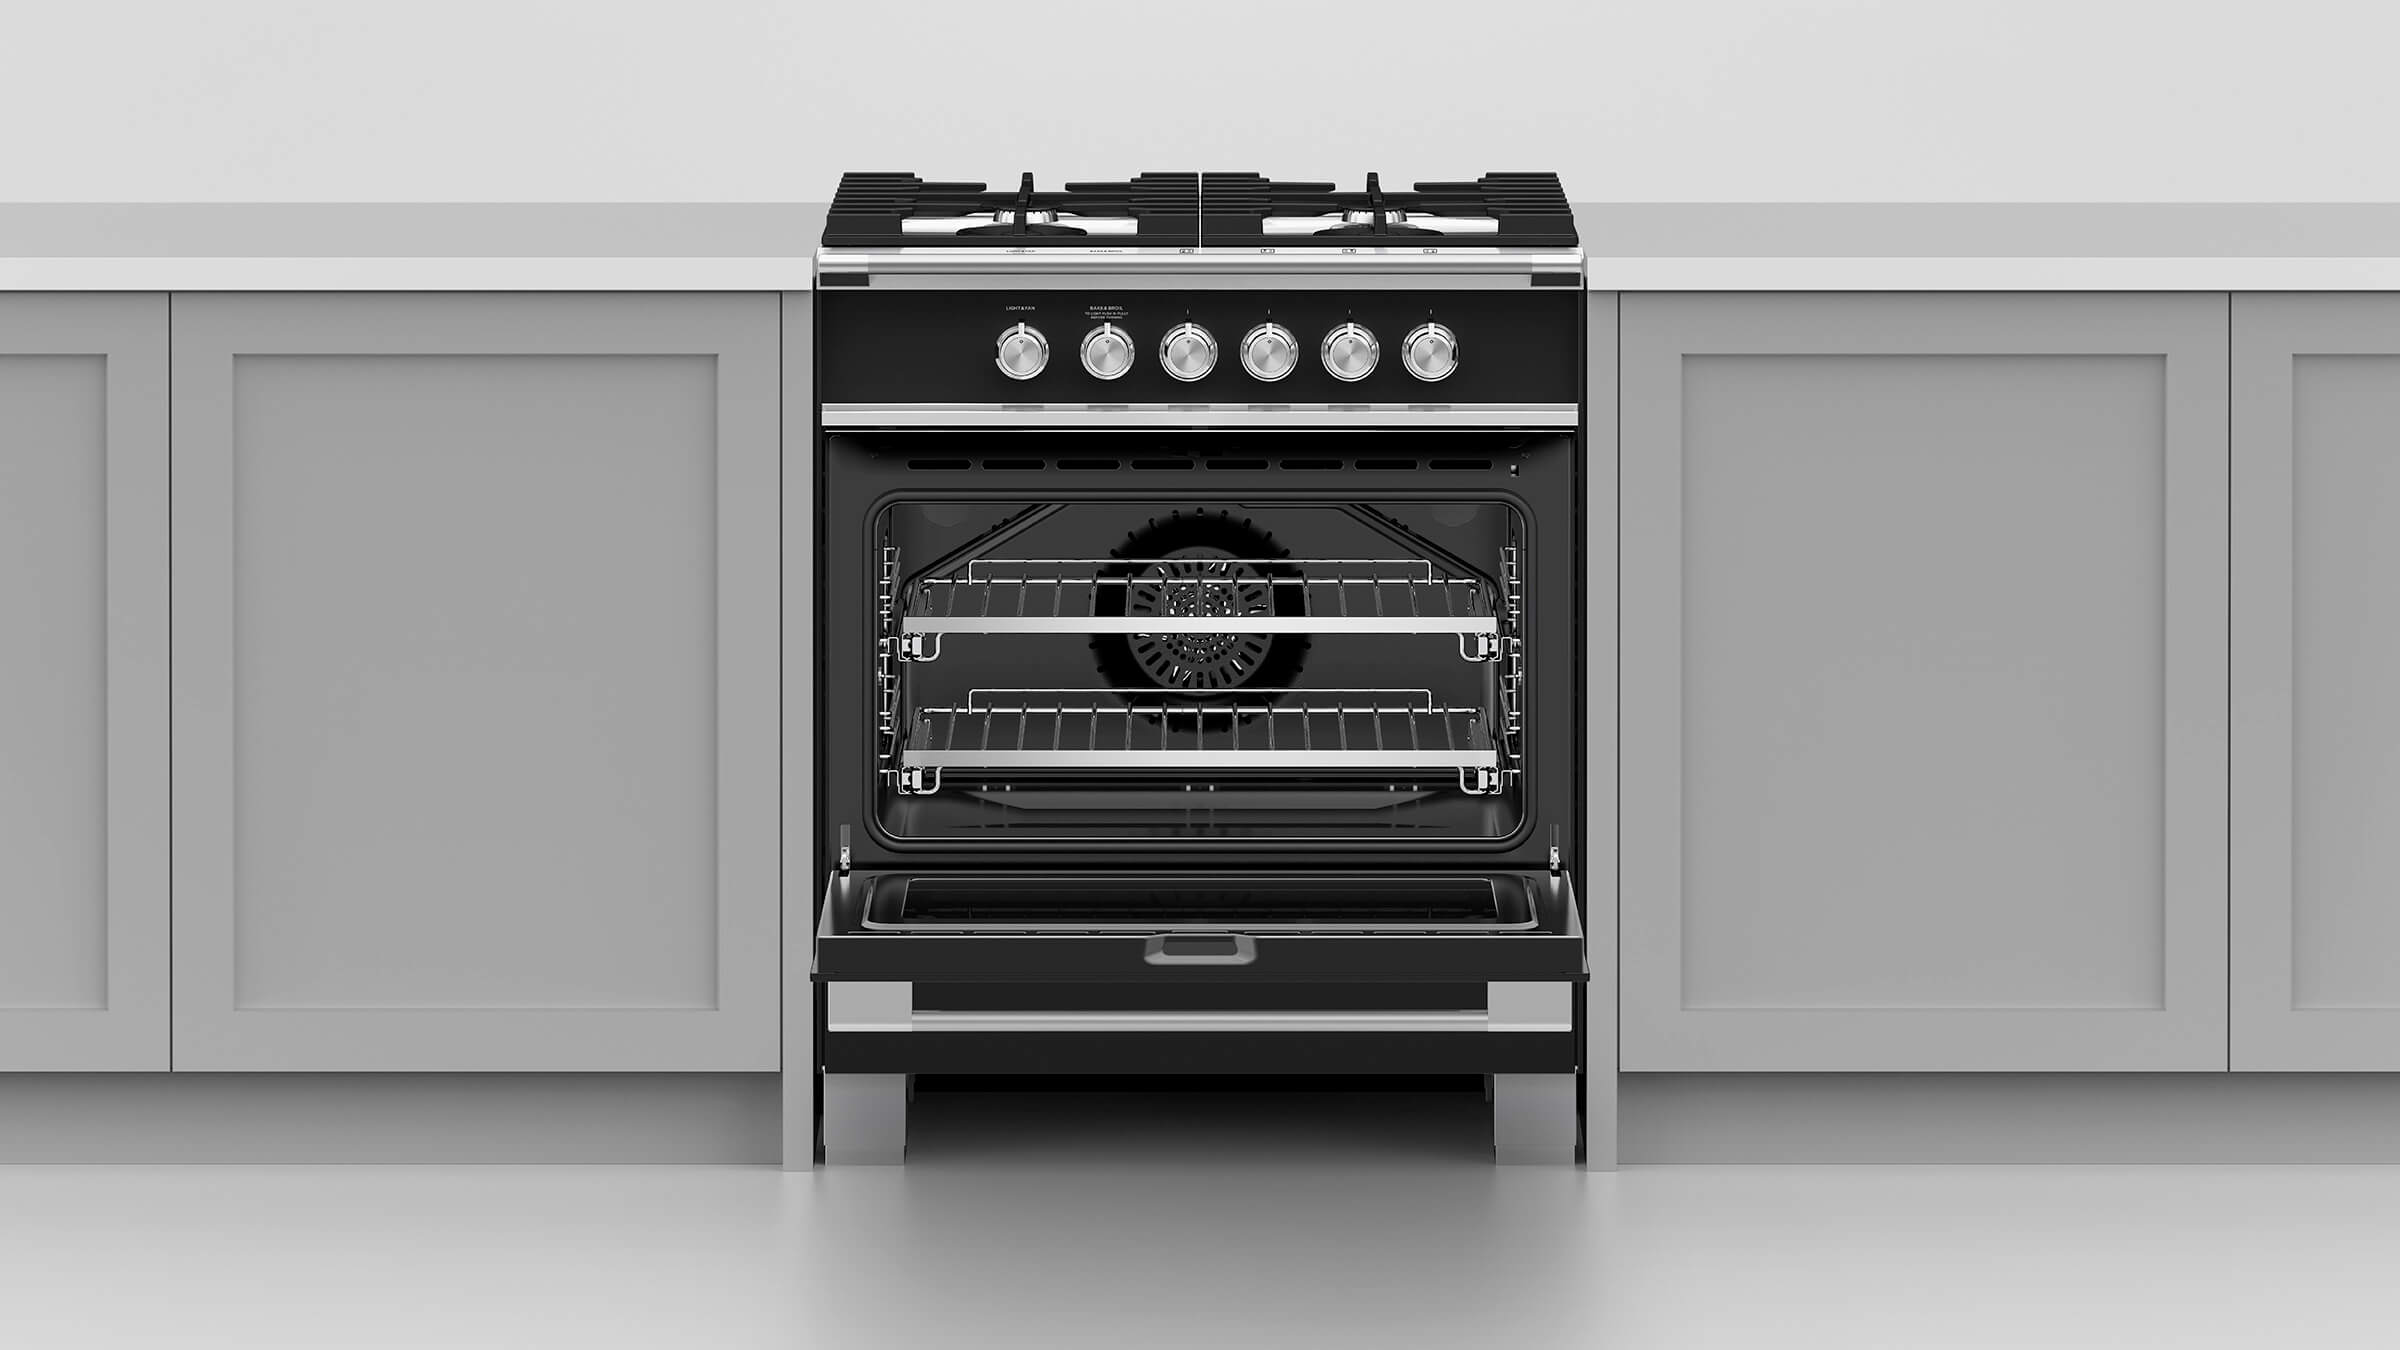 Bertazzoni Range Reviews Kitchen Appliances Portland, Or | Nw Natural Appliance Center